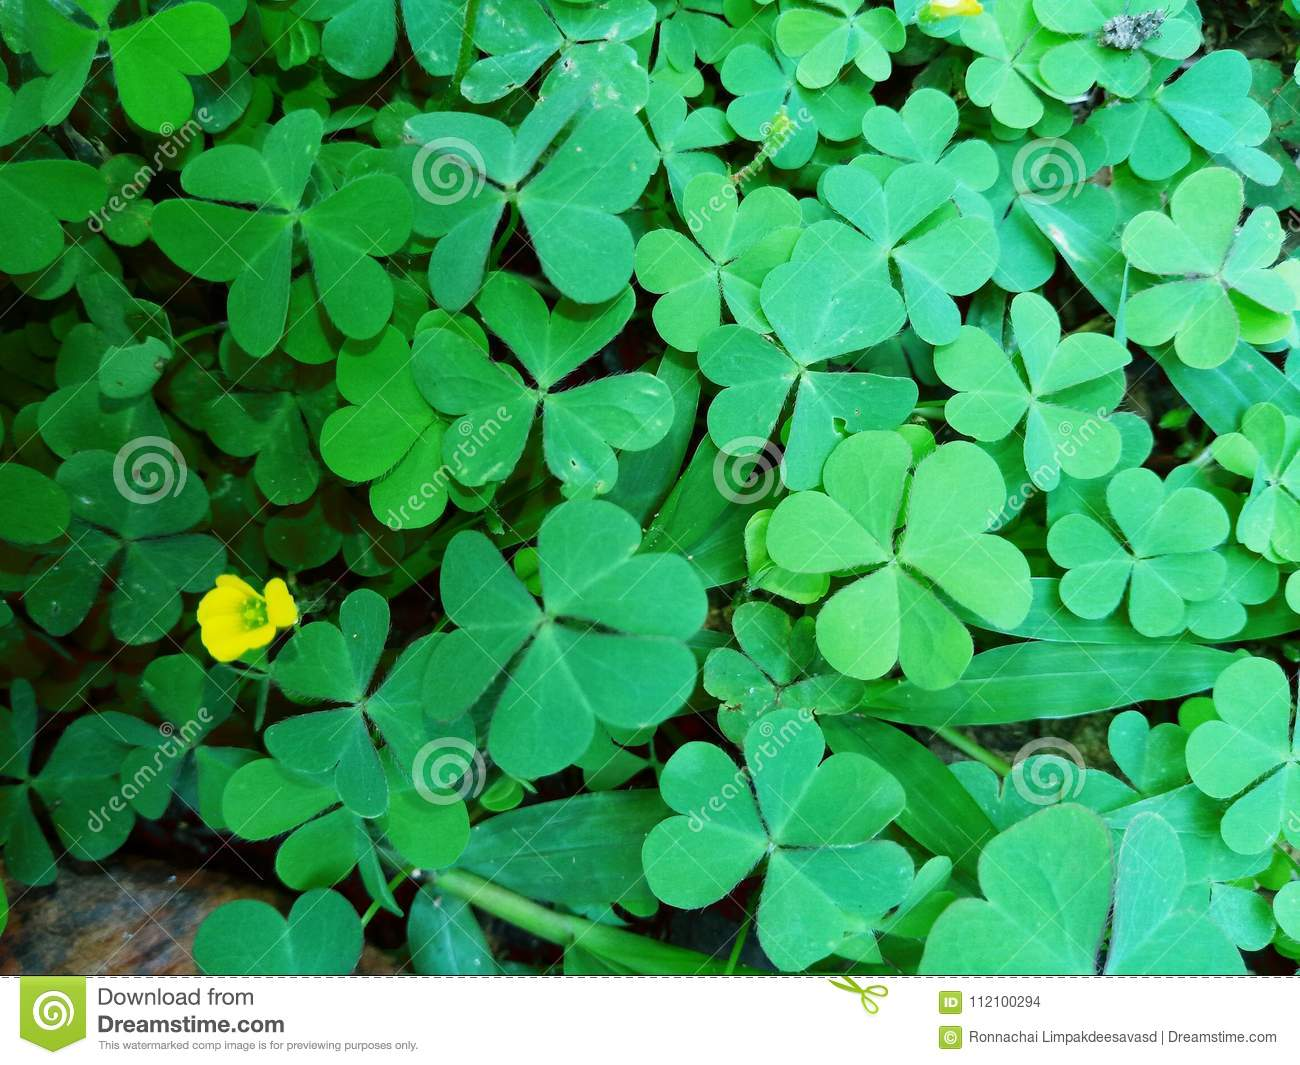 Green leaf Clover plant texture closeup background